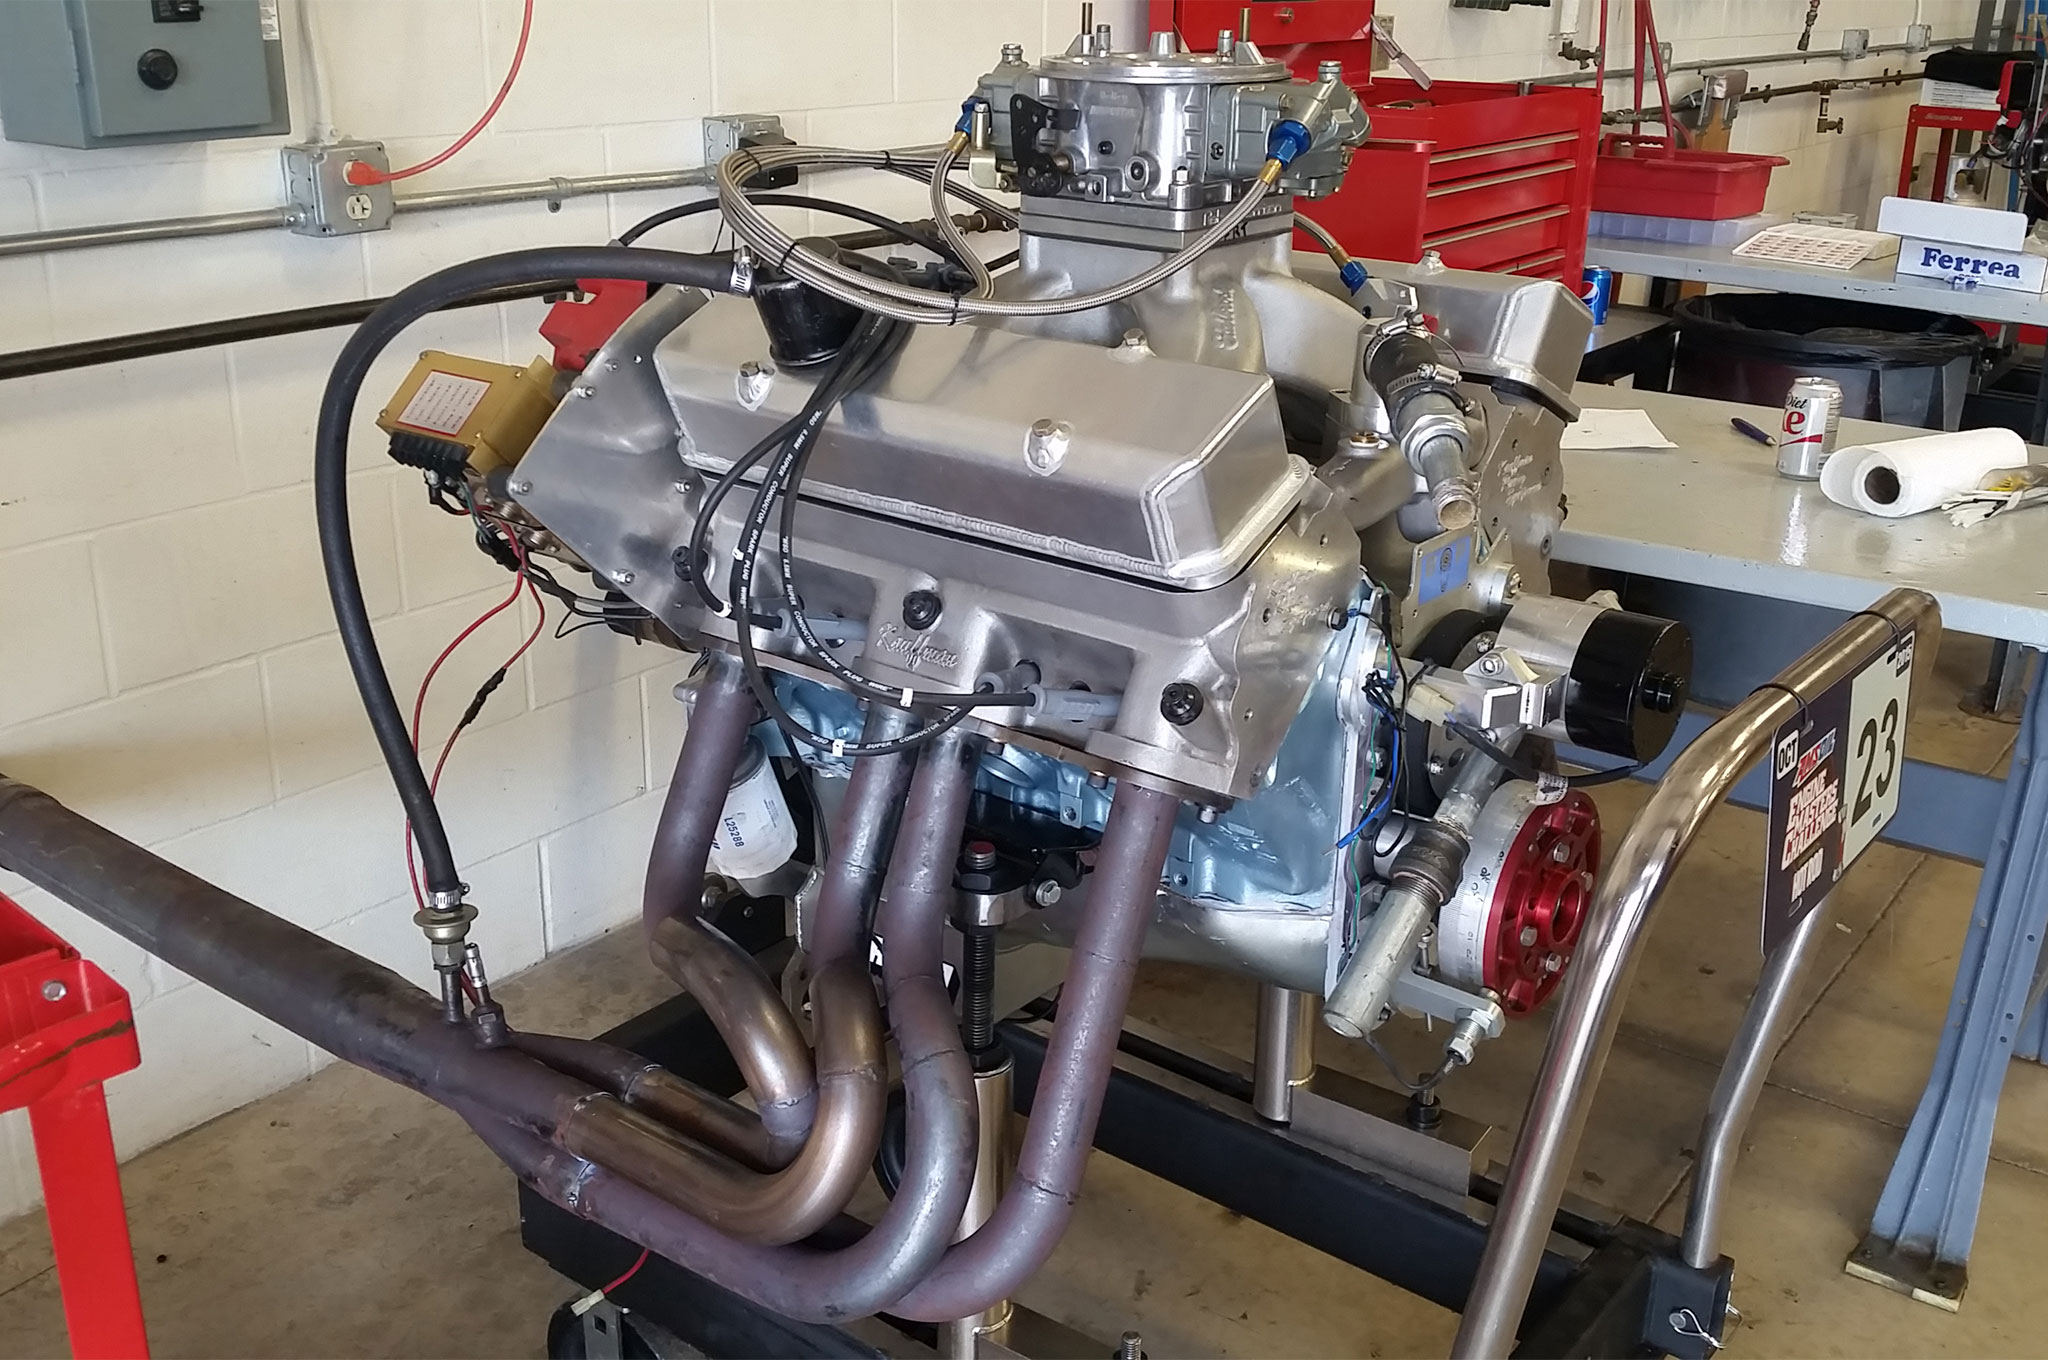 At 465ci, the Semchee Pontiac is the most diminutive engine in the Shootout. With Kaufmann cylinder heads and a scoring system that scales power and torque across displacement, don't count this potent Poncho out!